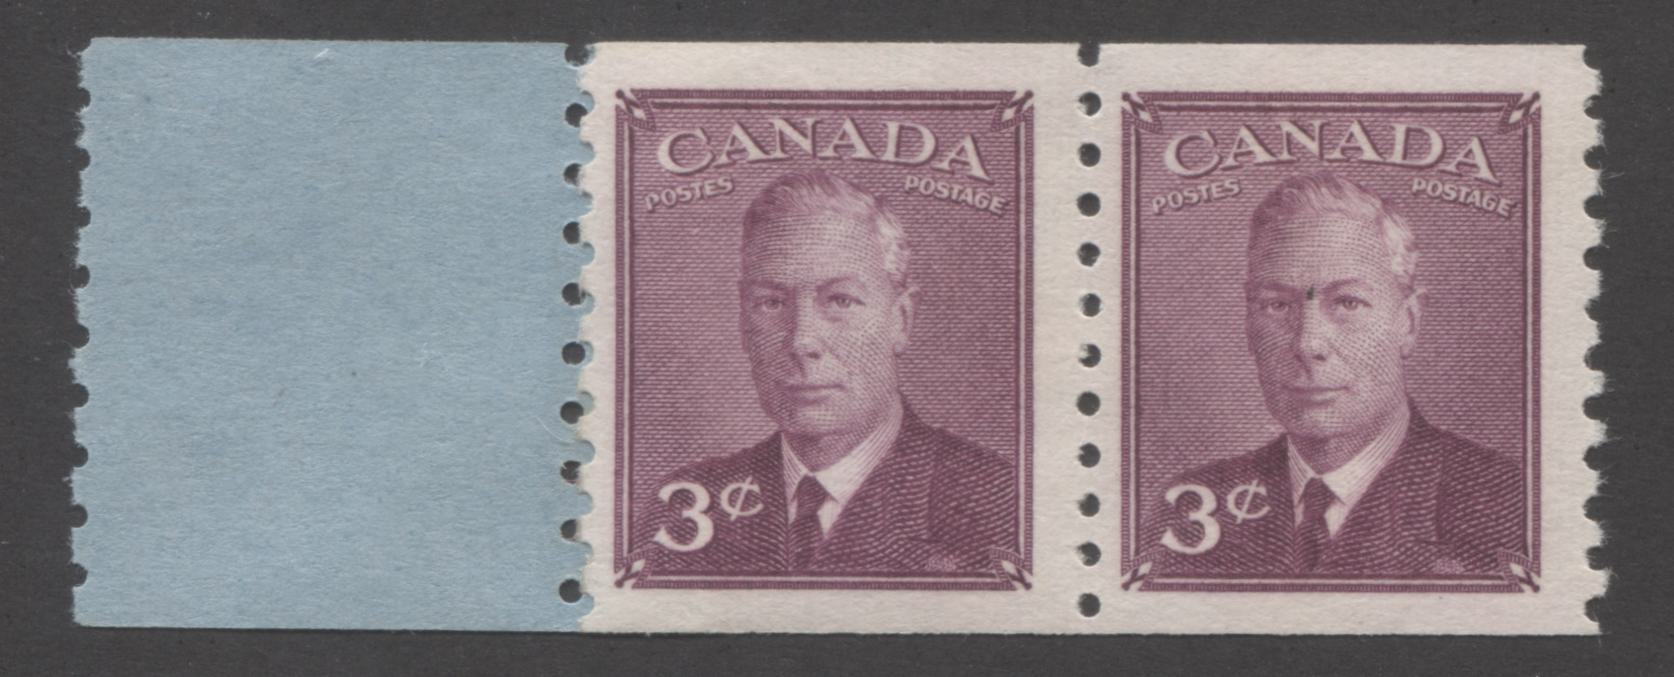 Canada #299 3c Rose Purple, King George VI 1949-1952 Postes Postage Issue A Fine NH Start Pair of the Revised Design Coil Stamp on Vertical Ribbed Paper Brixton Chrome